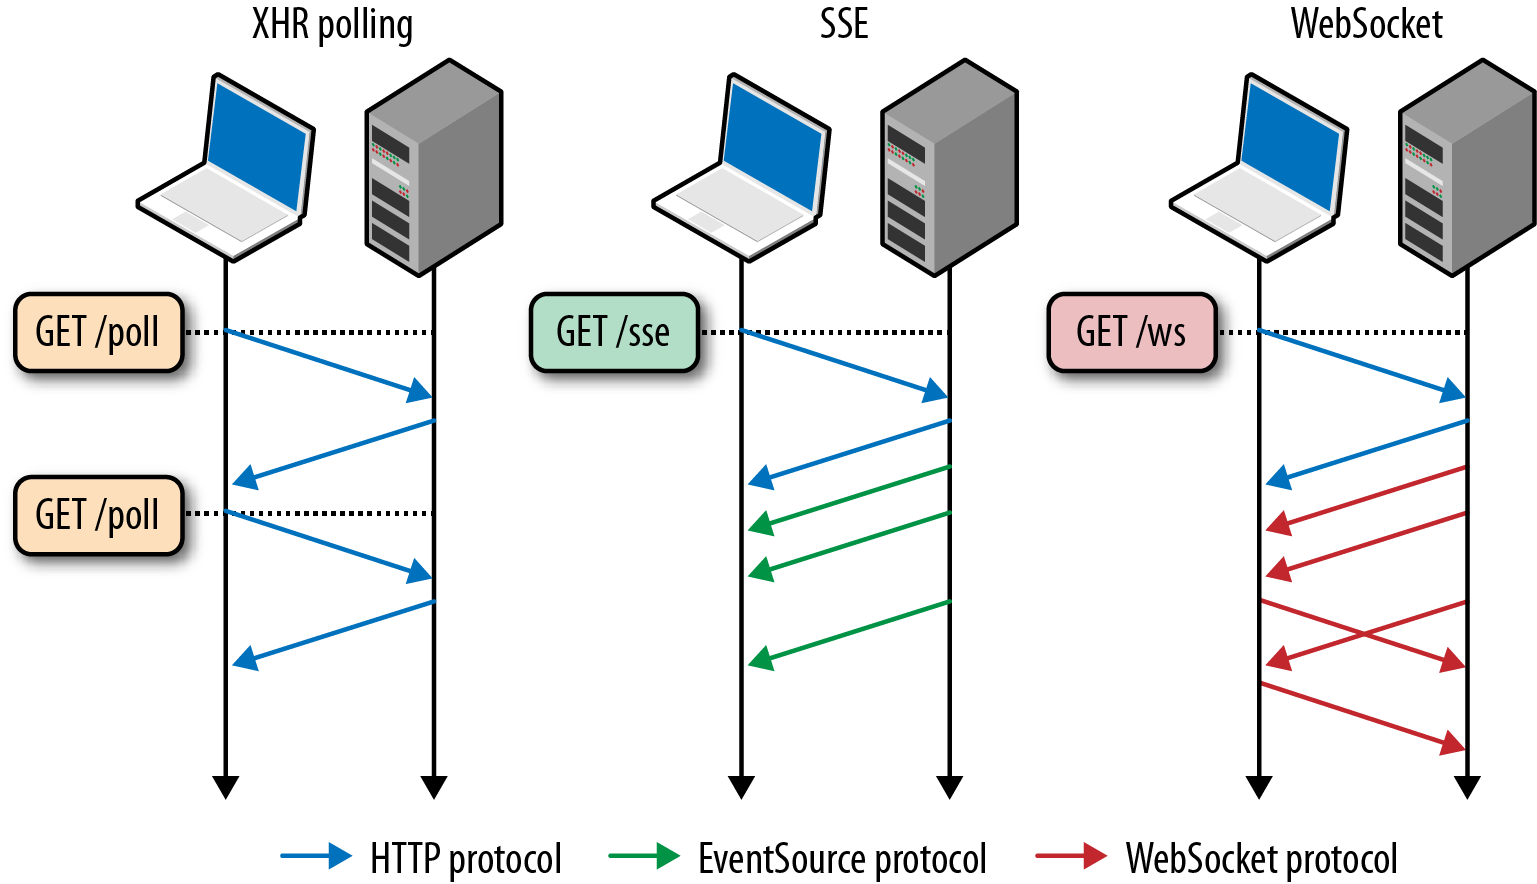 Communication flow of XHR, SSE, and WebSocket